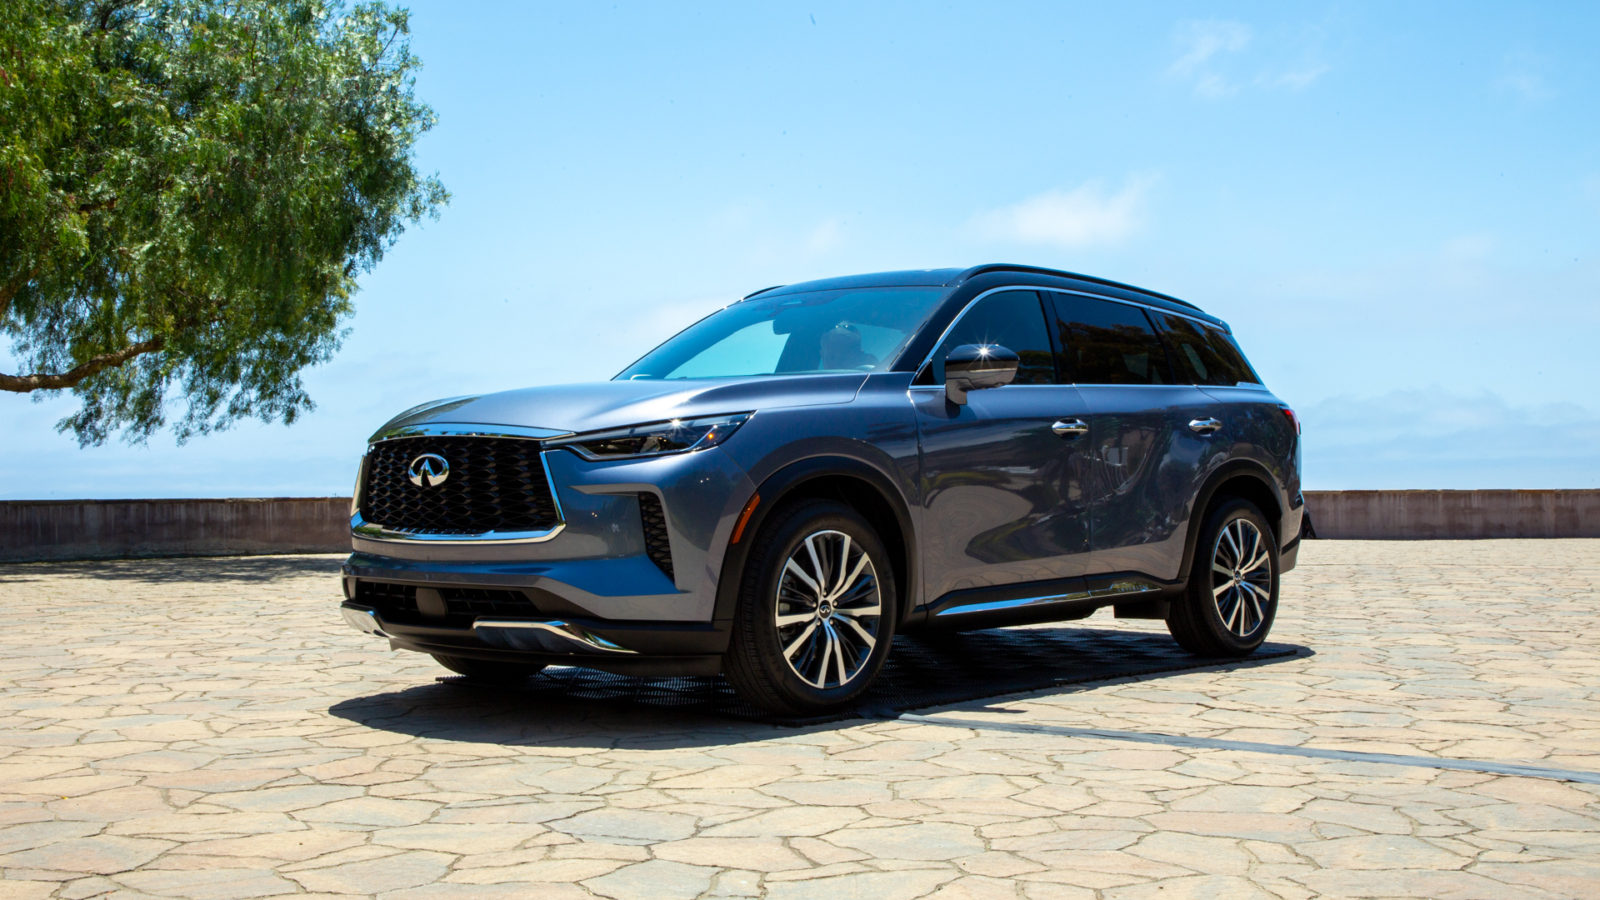 redesigned-2022-infiniti-qx60-adds-technology,-refinement,-and-$2,500-to-the-price